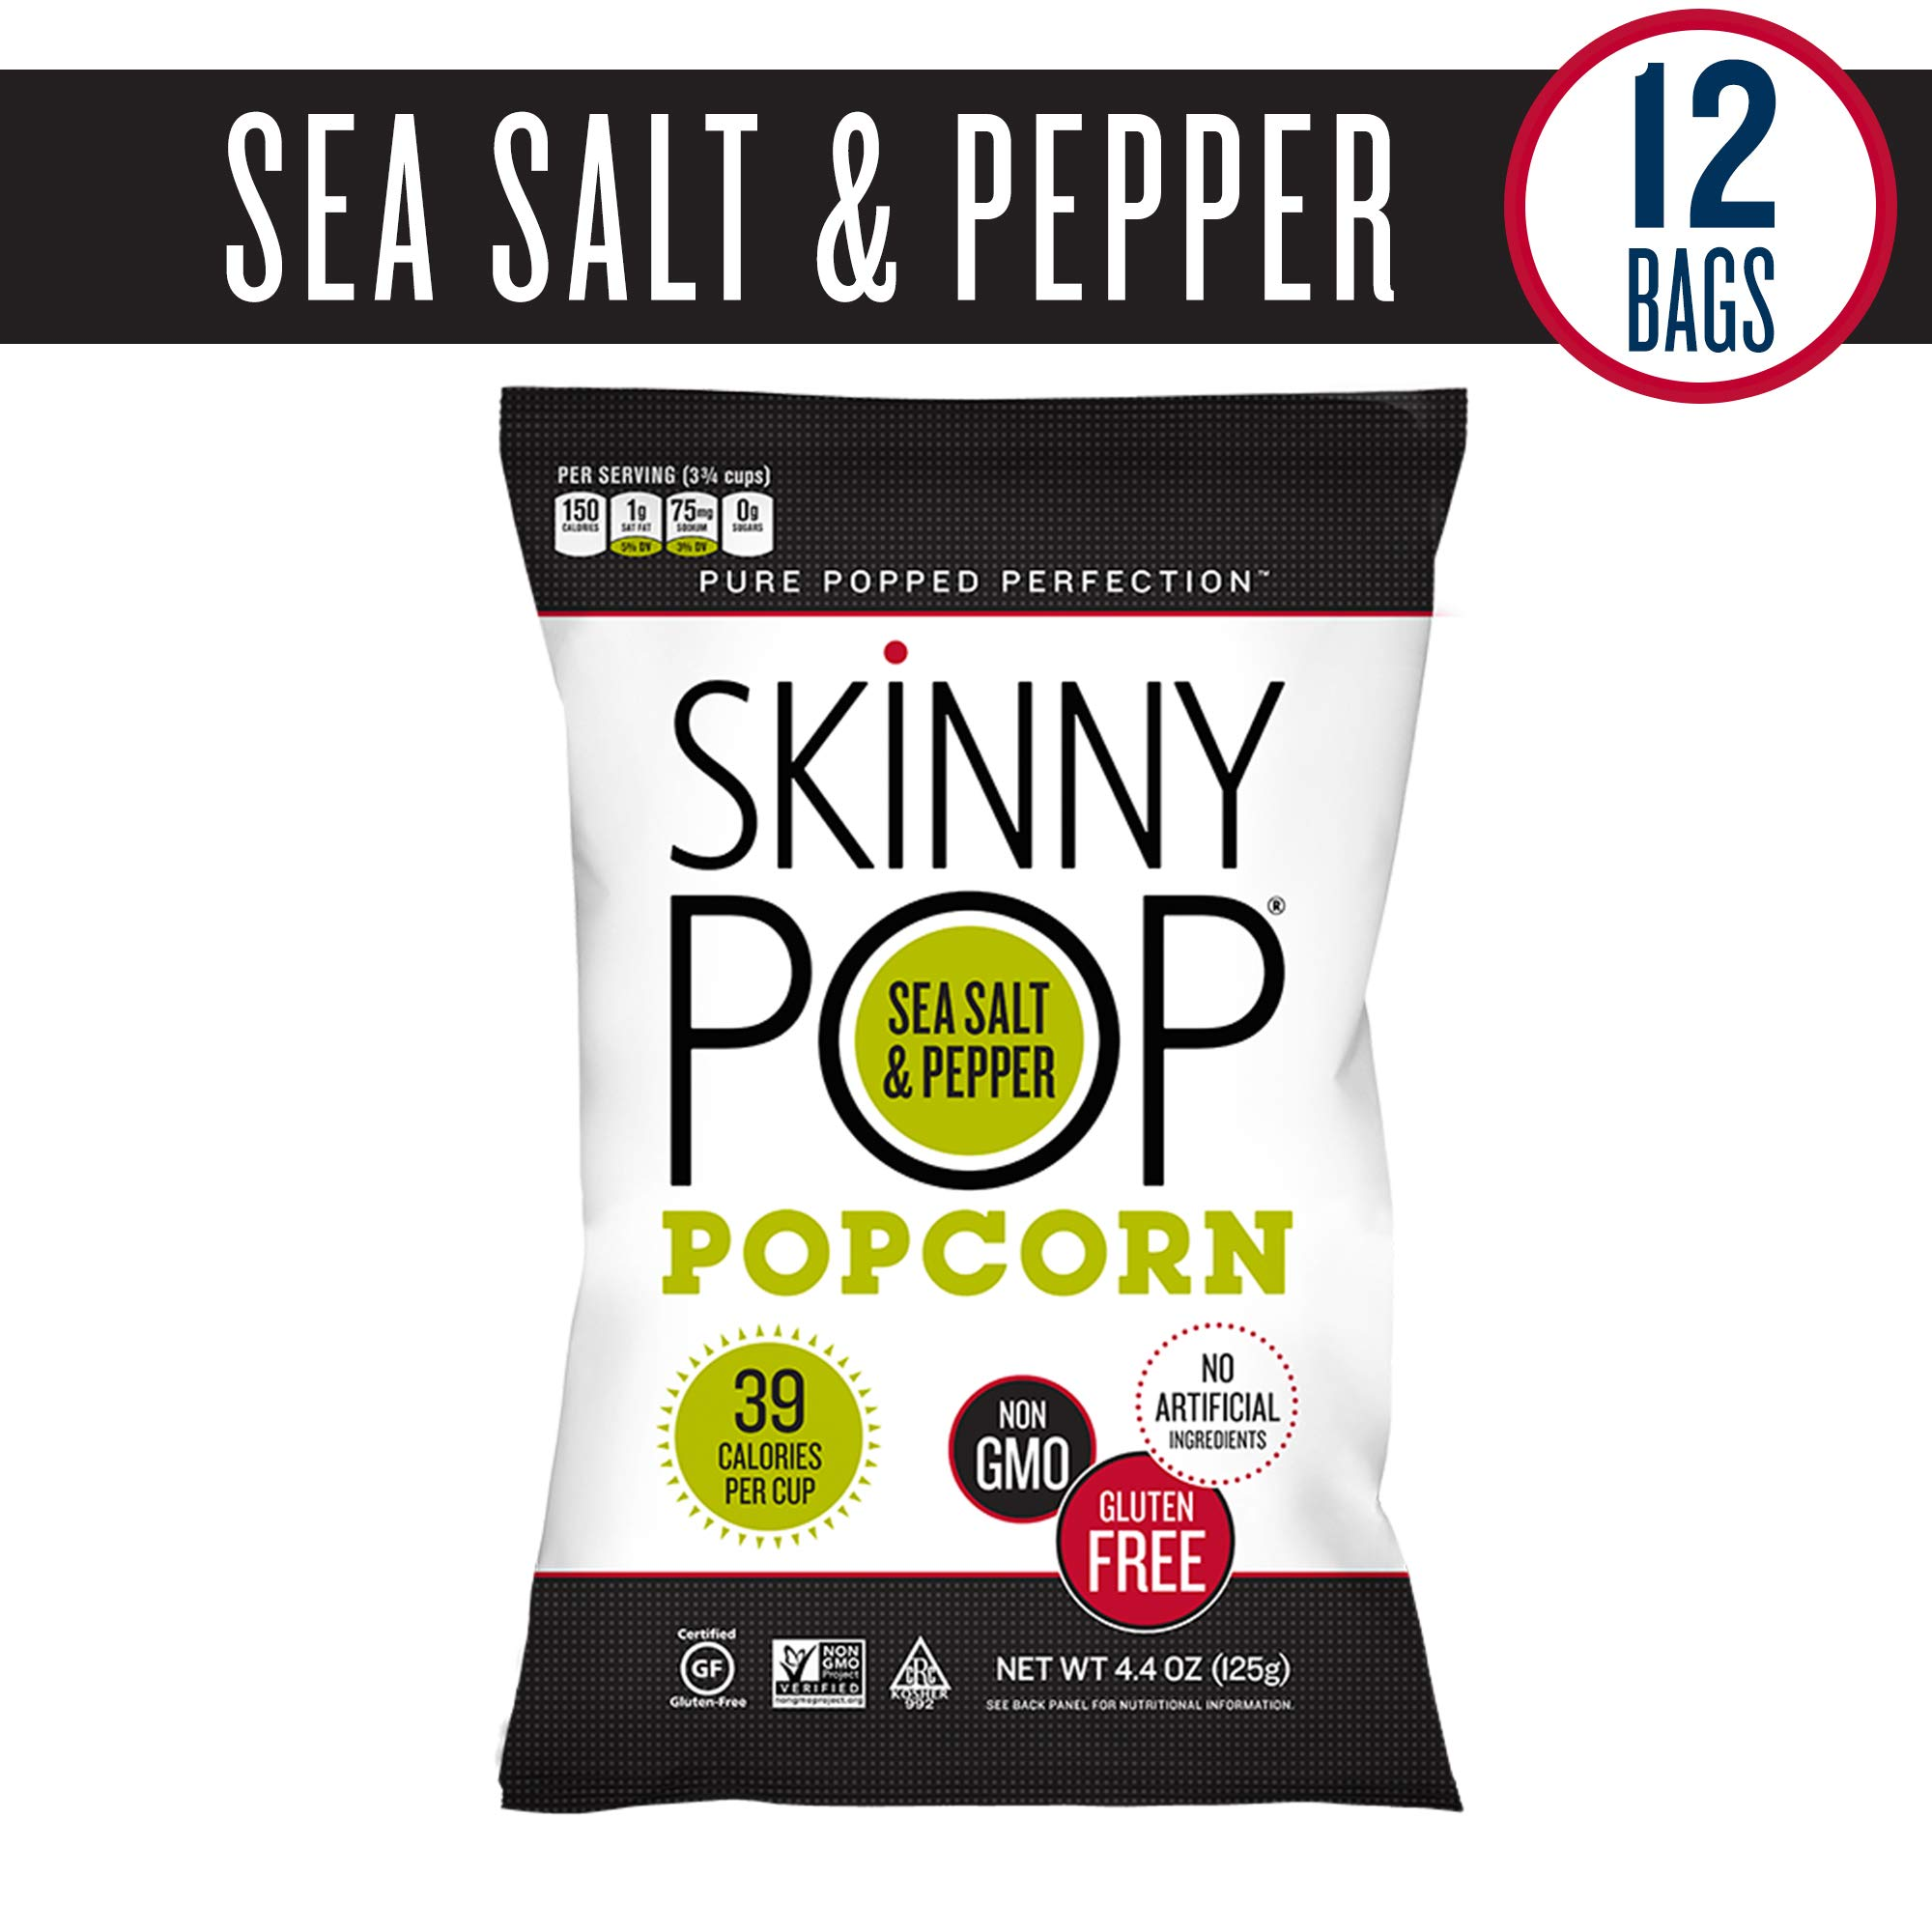 SKINNYPOP Sea Salt & Pepper Popcorn, Individual Bags, Gluten Free Popcorn, Non-GMO, No Artificial Ingredients, A Delicious Source of Fiber, 4.4 Ounce (Pack of 12)